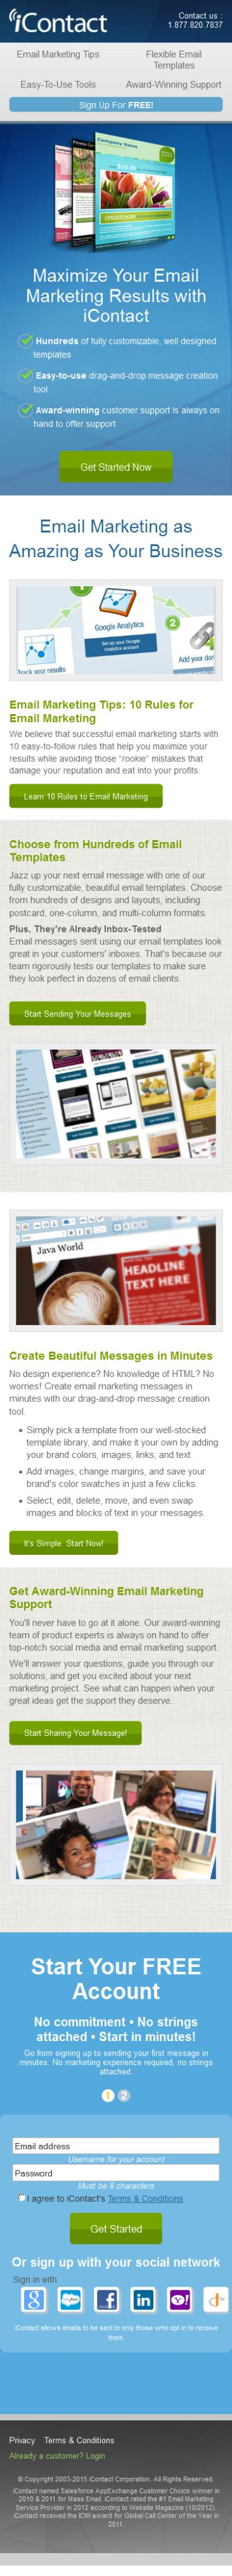 Best Landing Page Designs for Business services - Email Marketing ...